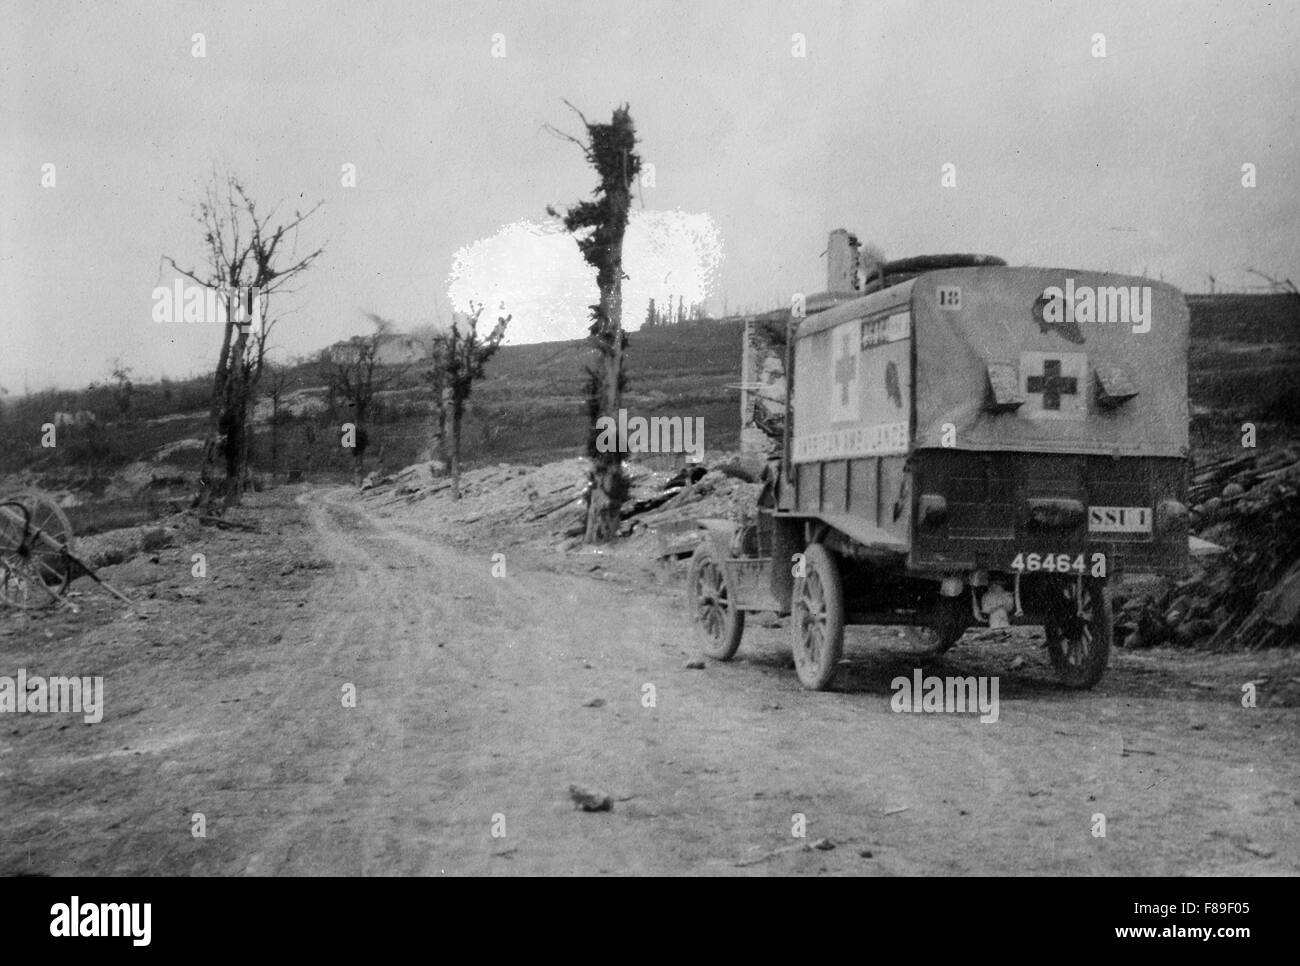 American Ambulance on road to Verdun in France - Stock Image